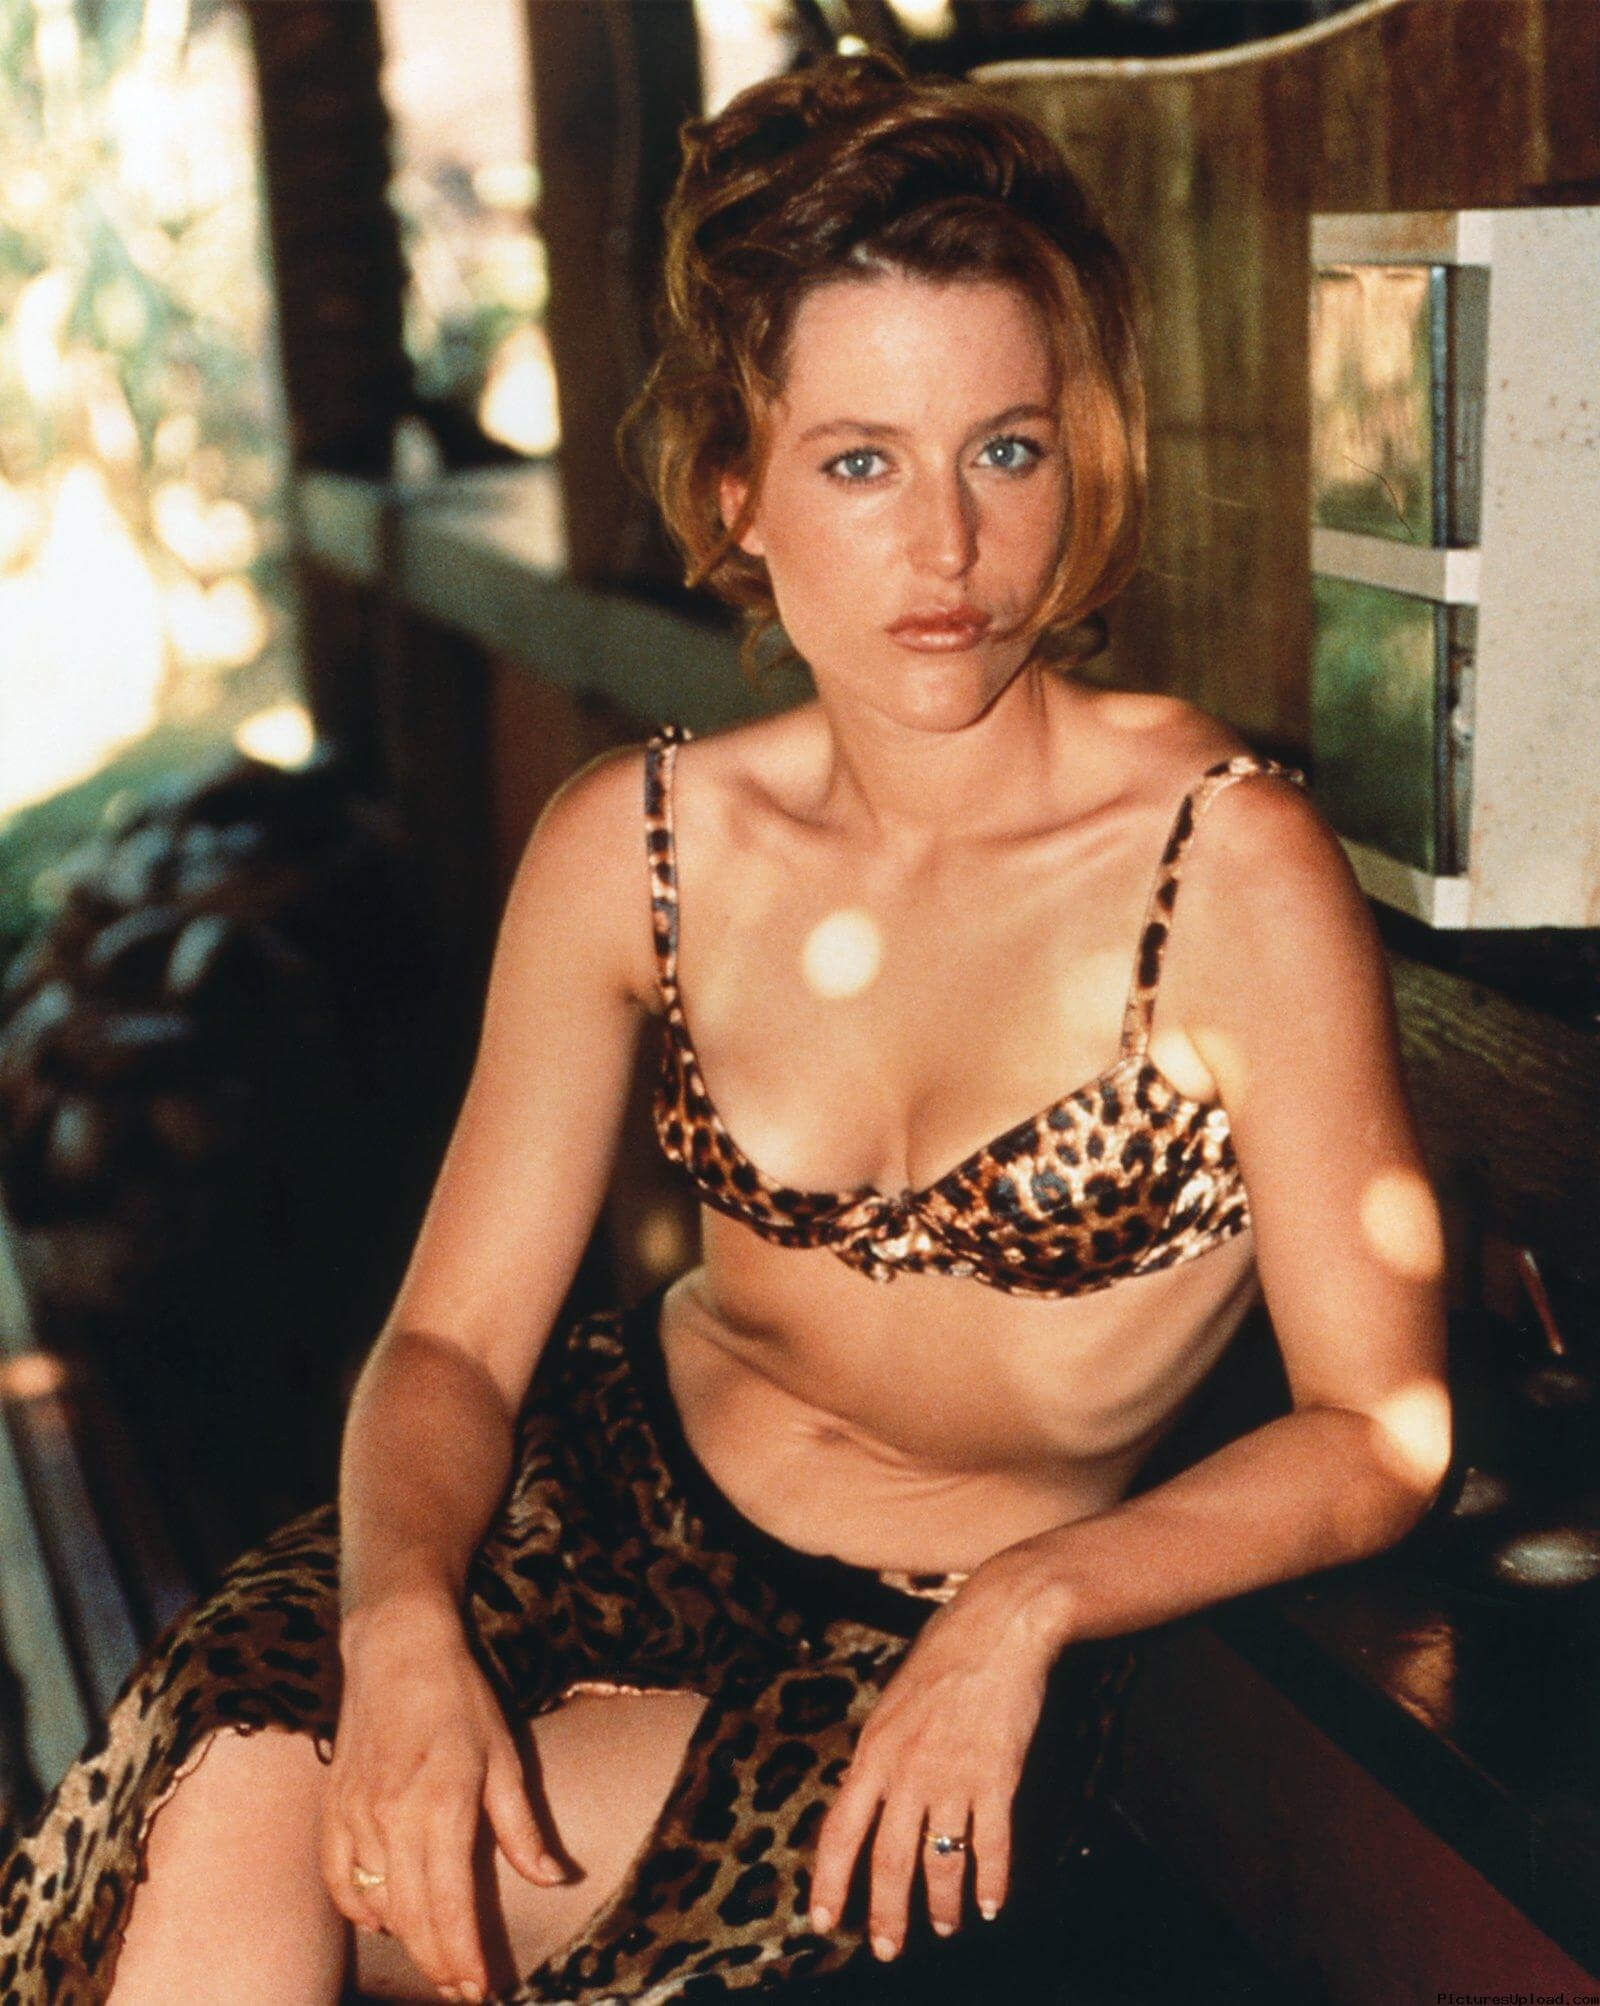 Gillian Anderson hot bikiny pictures